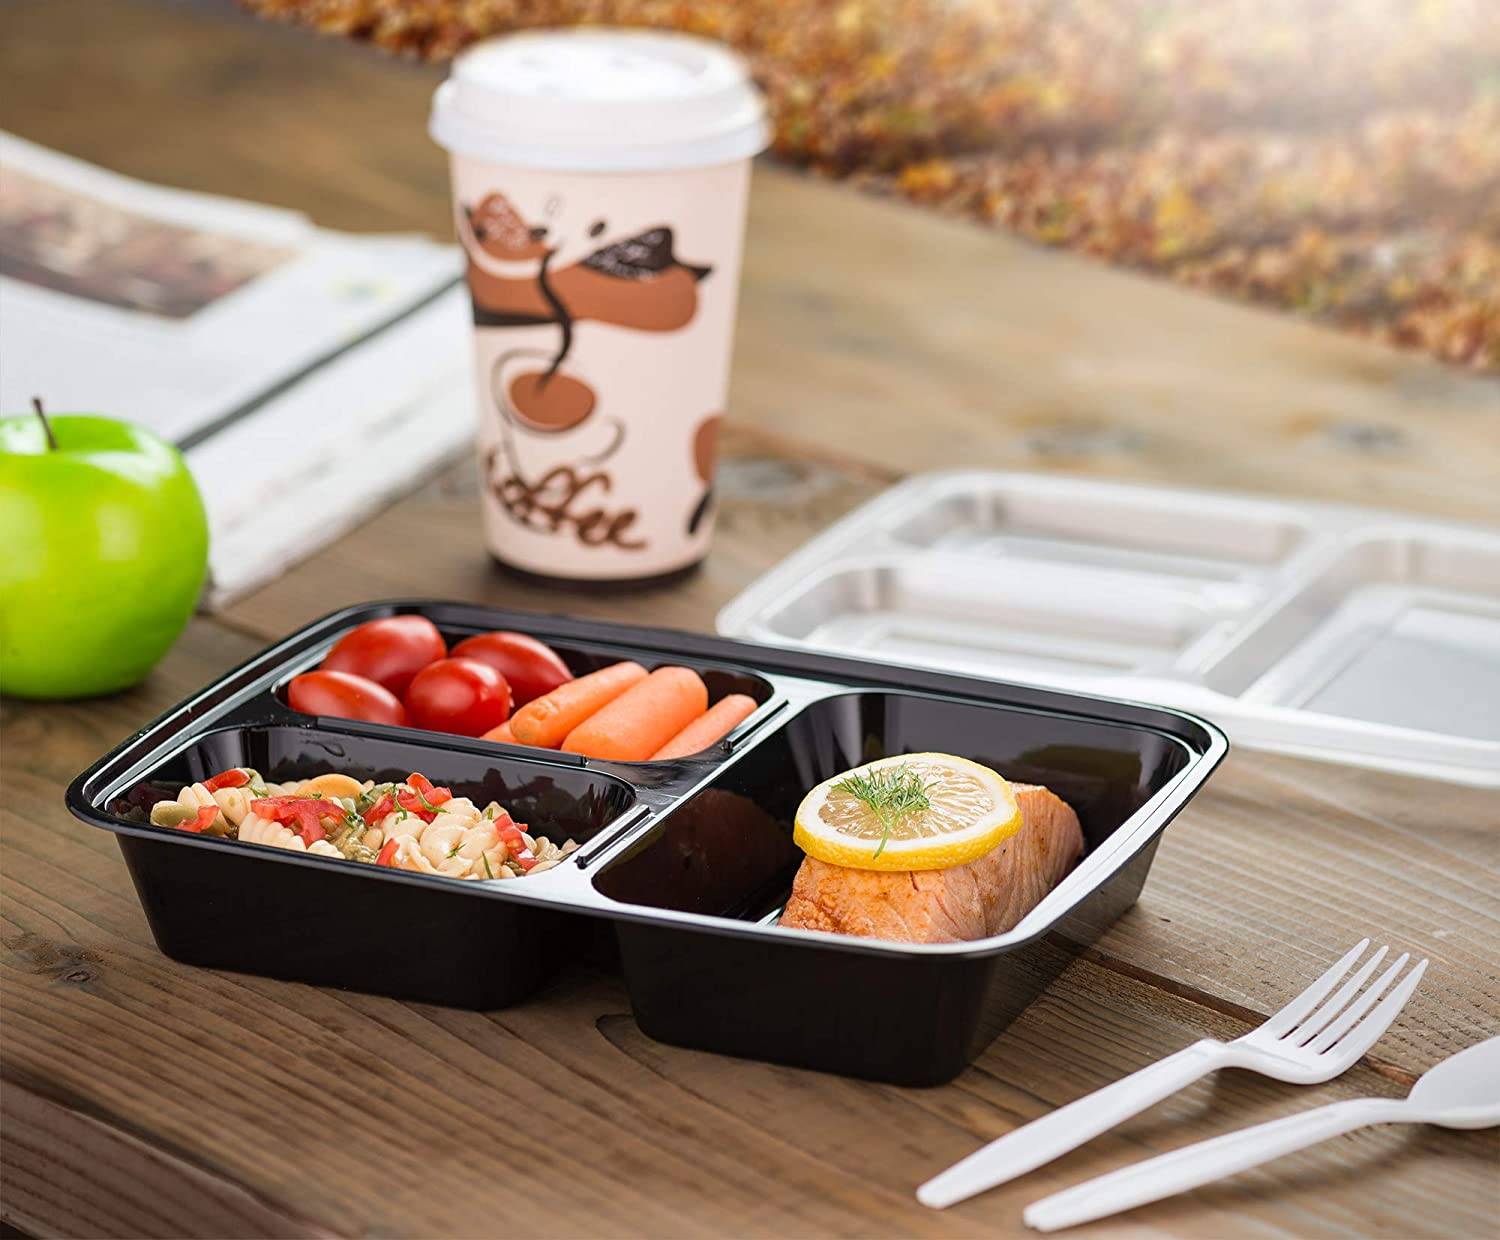 Should the Disposable Food Container be Injection mold or Thermoforming mold?